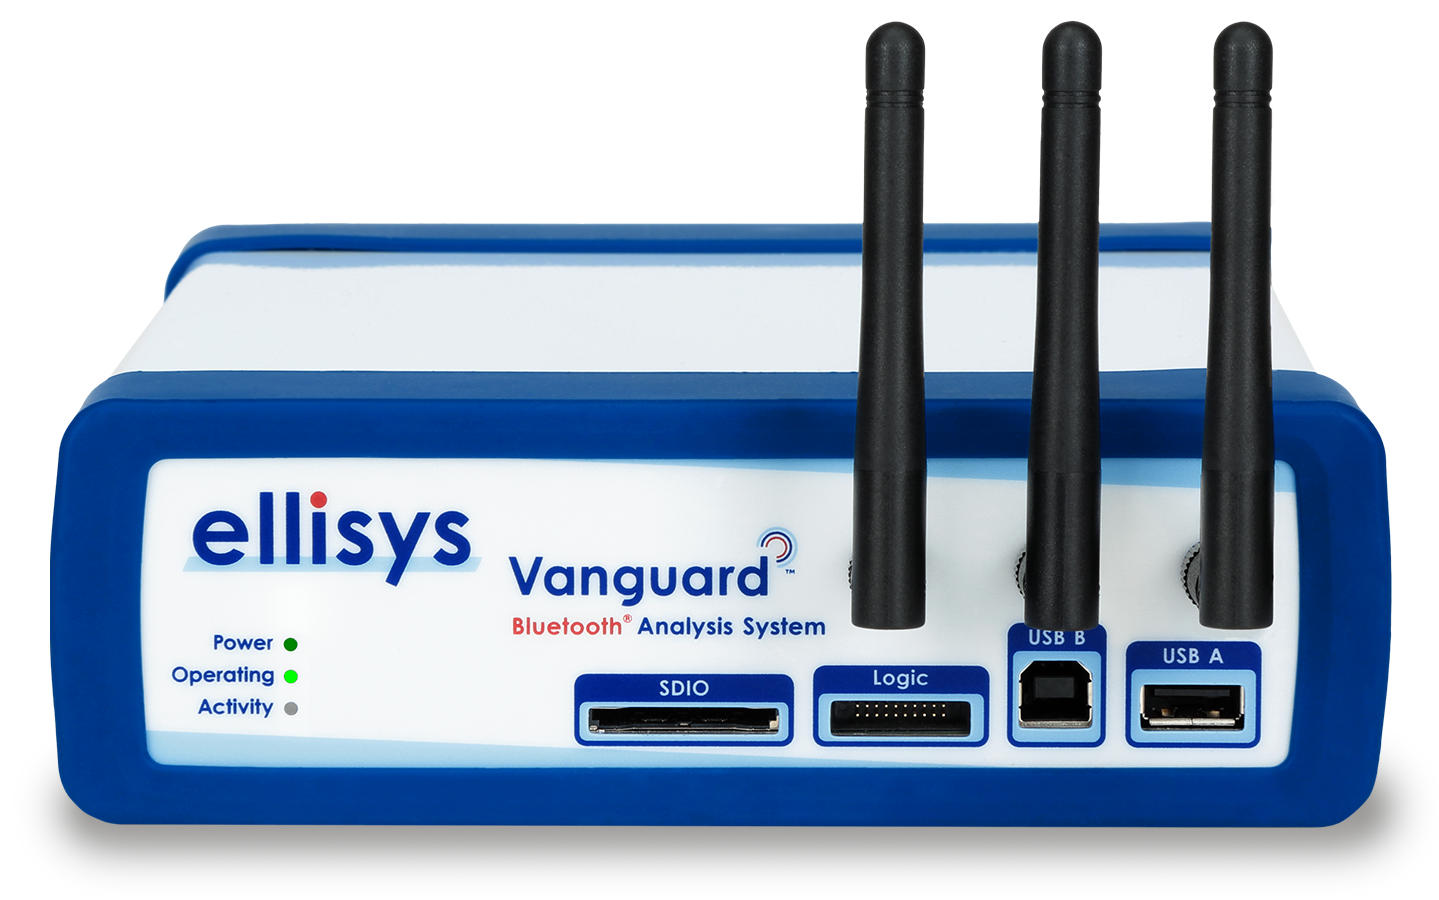 Ellisys - Bluetooth Vanguard - Advanced Bluetooth Analysis